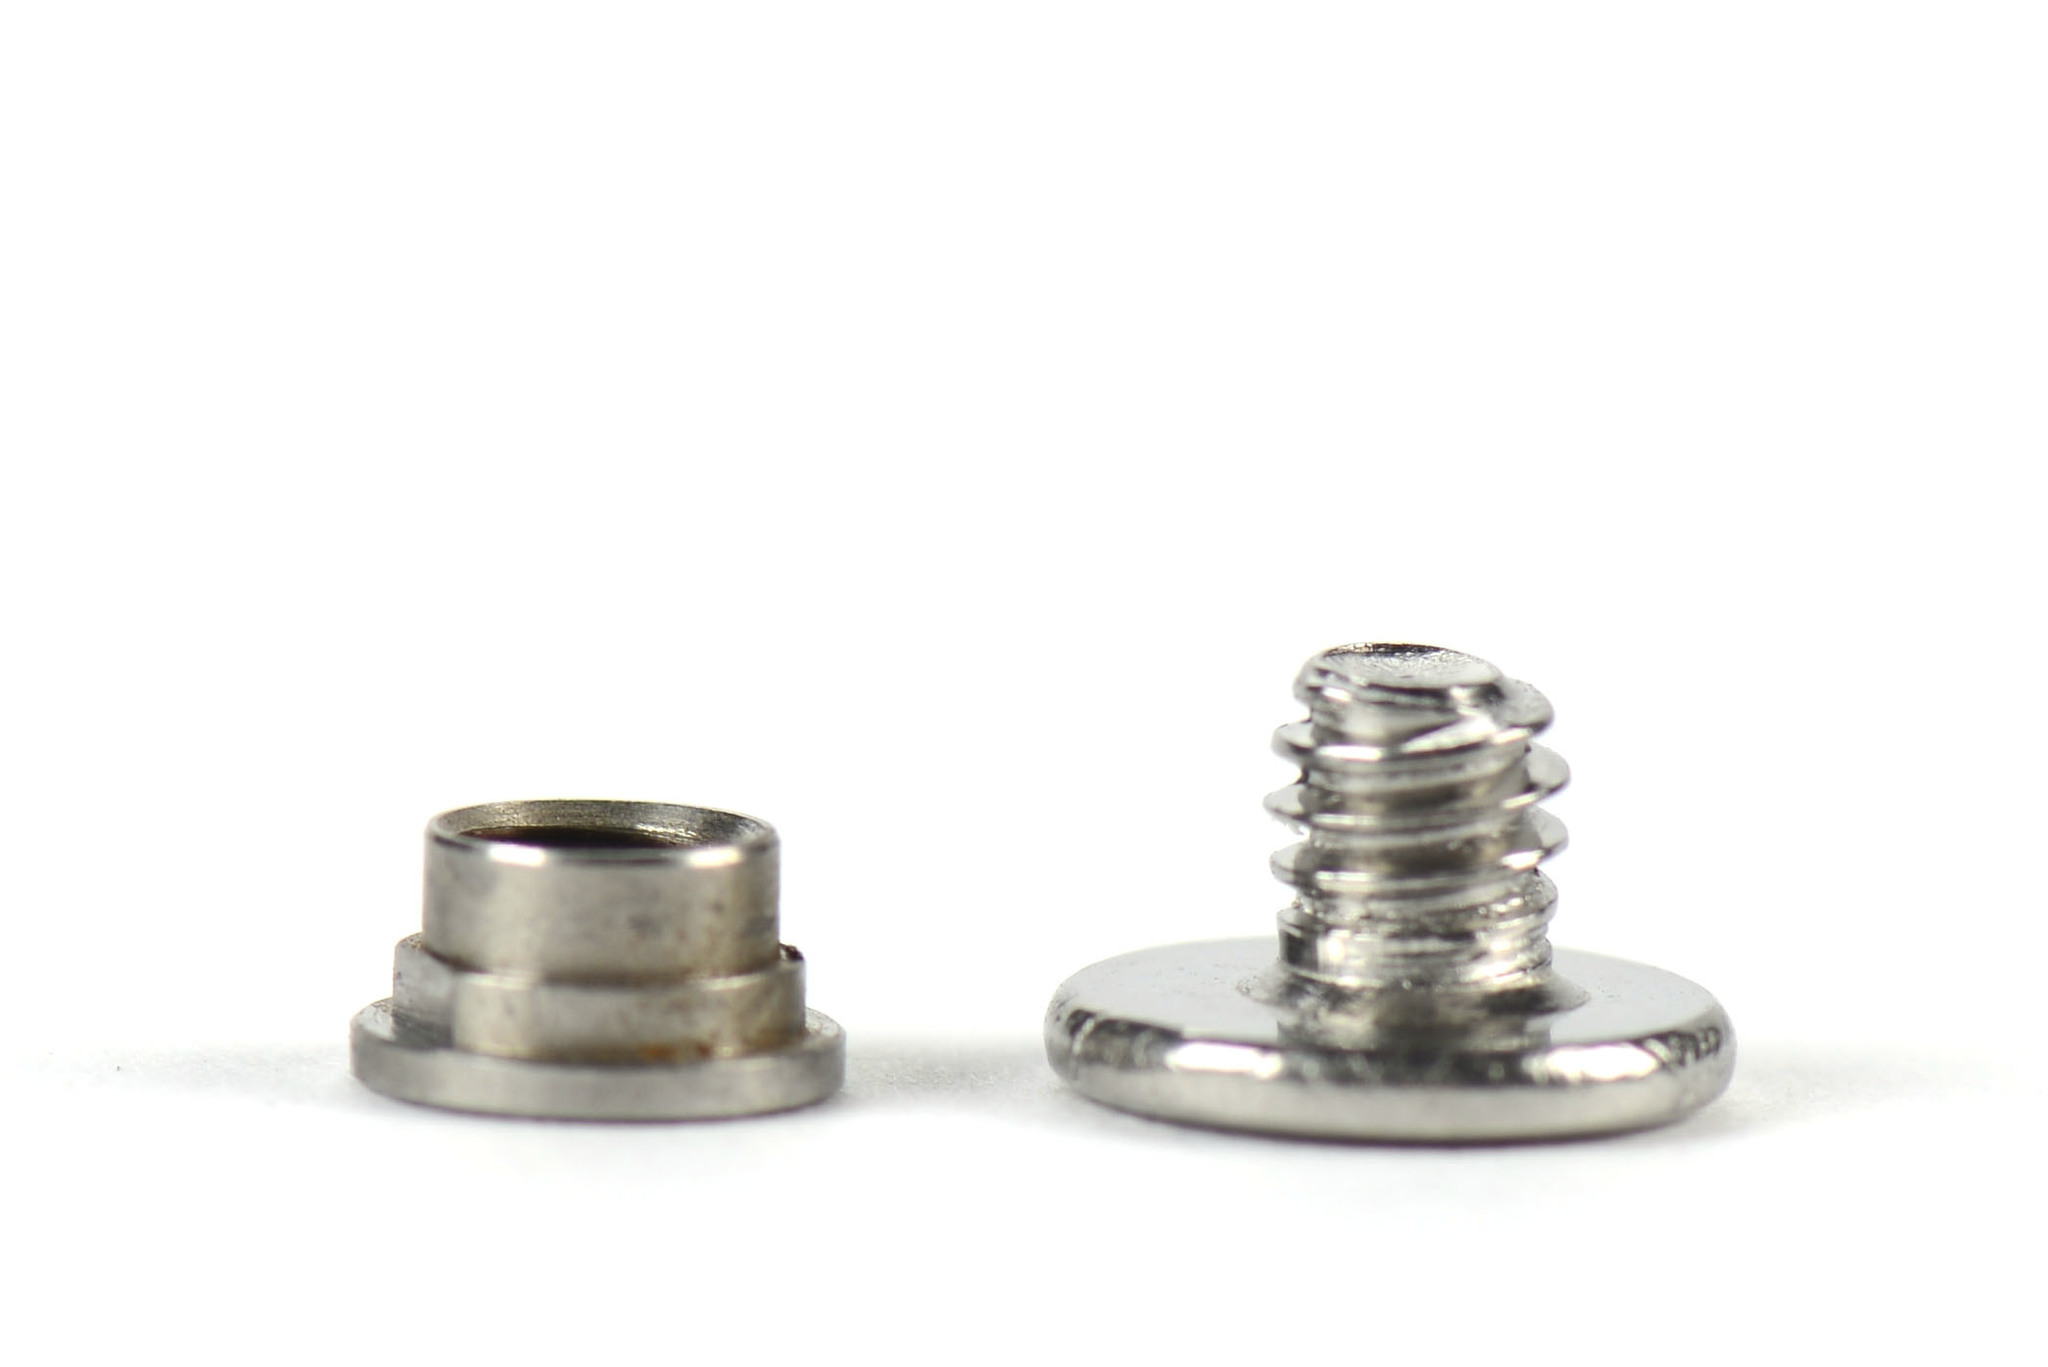 Pivot's Indexed Bushings for Reduced Spin